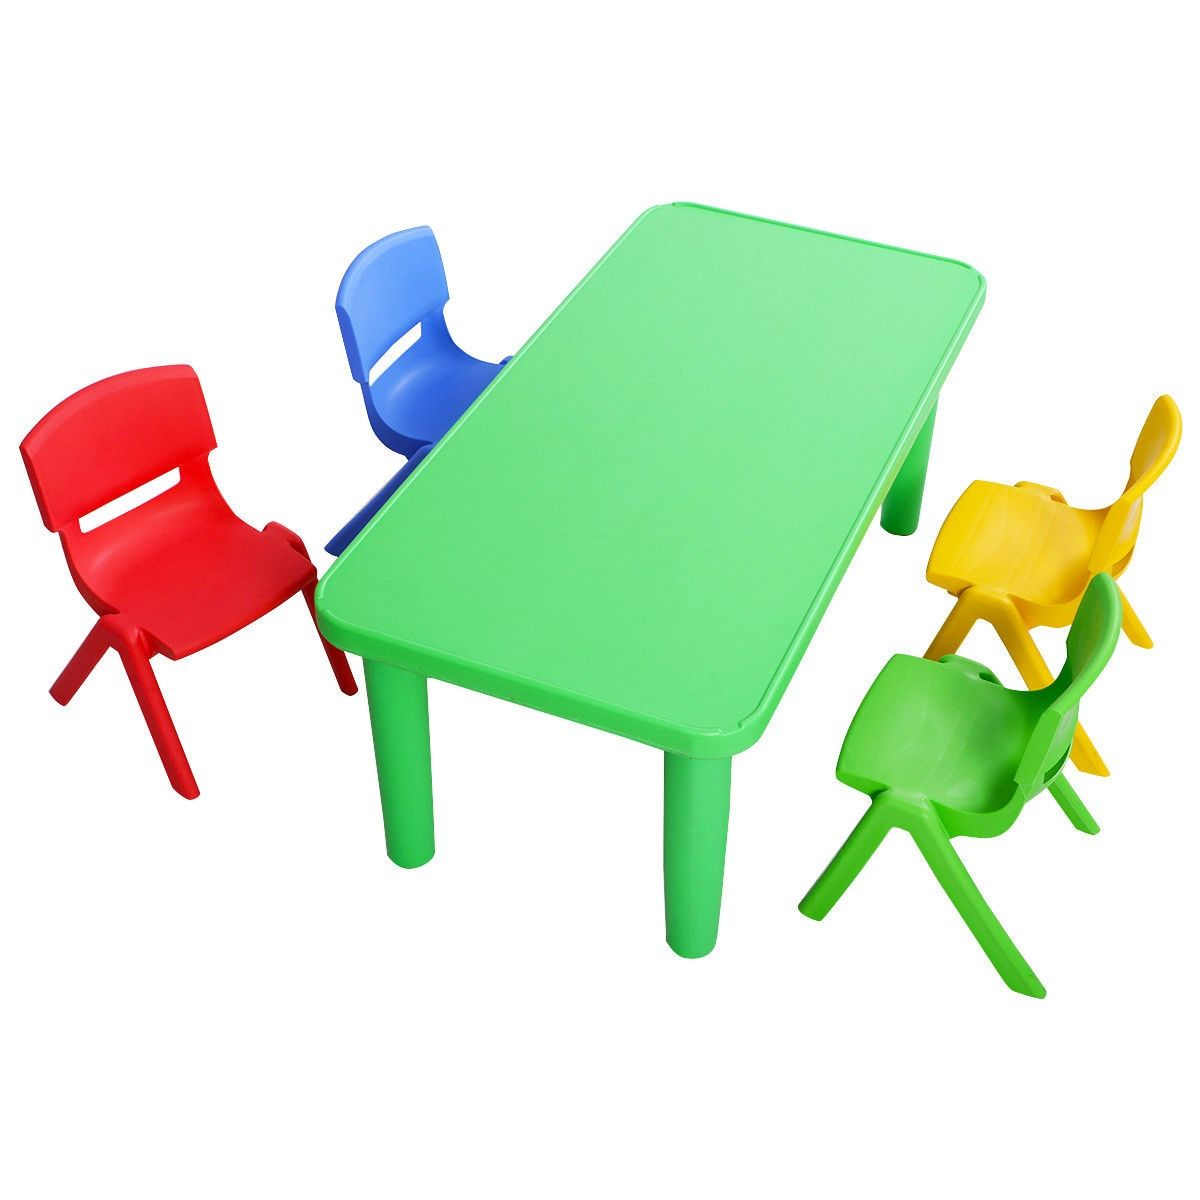 Kids Colorful Plastic Table And 4 Chairs Set Plastic Tables Kids Table Chairs Cool Furniture